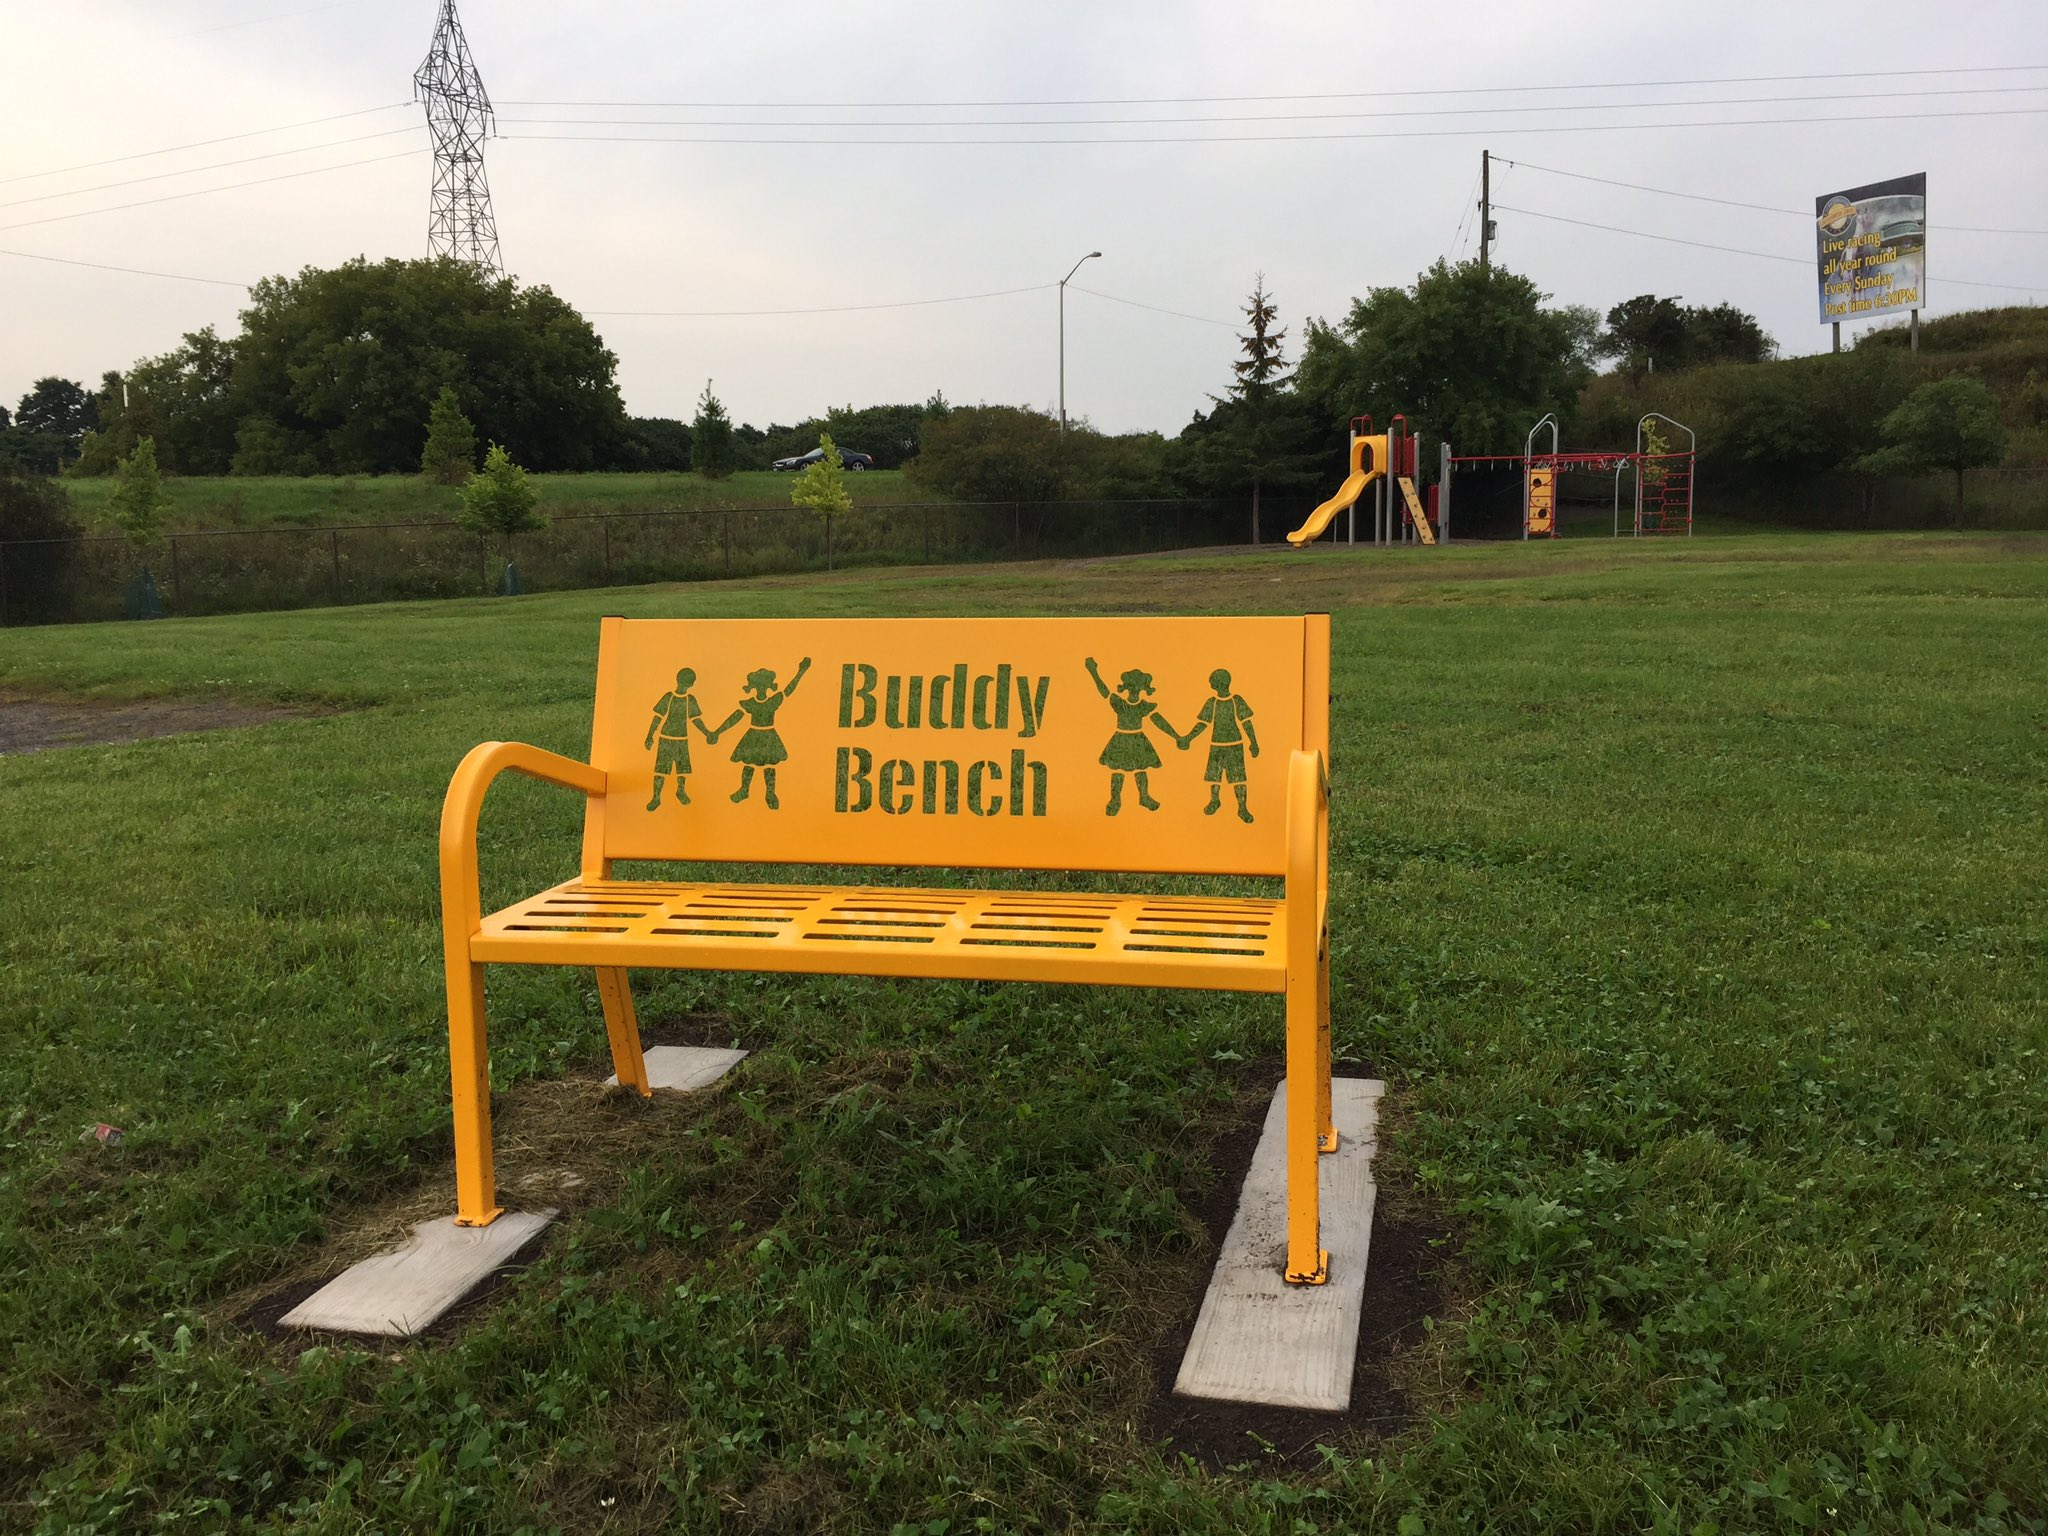 Our new Buddy Bench is installed and ready for its first customers! #ocsbFirstDay https://t.co/Xl4yCaV64n